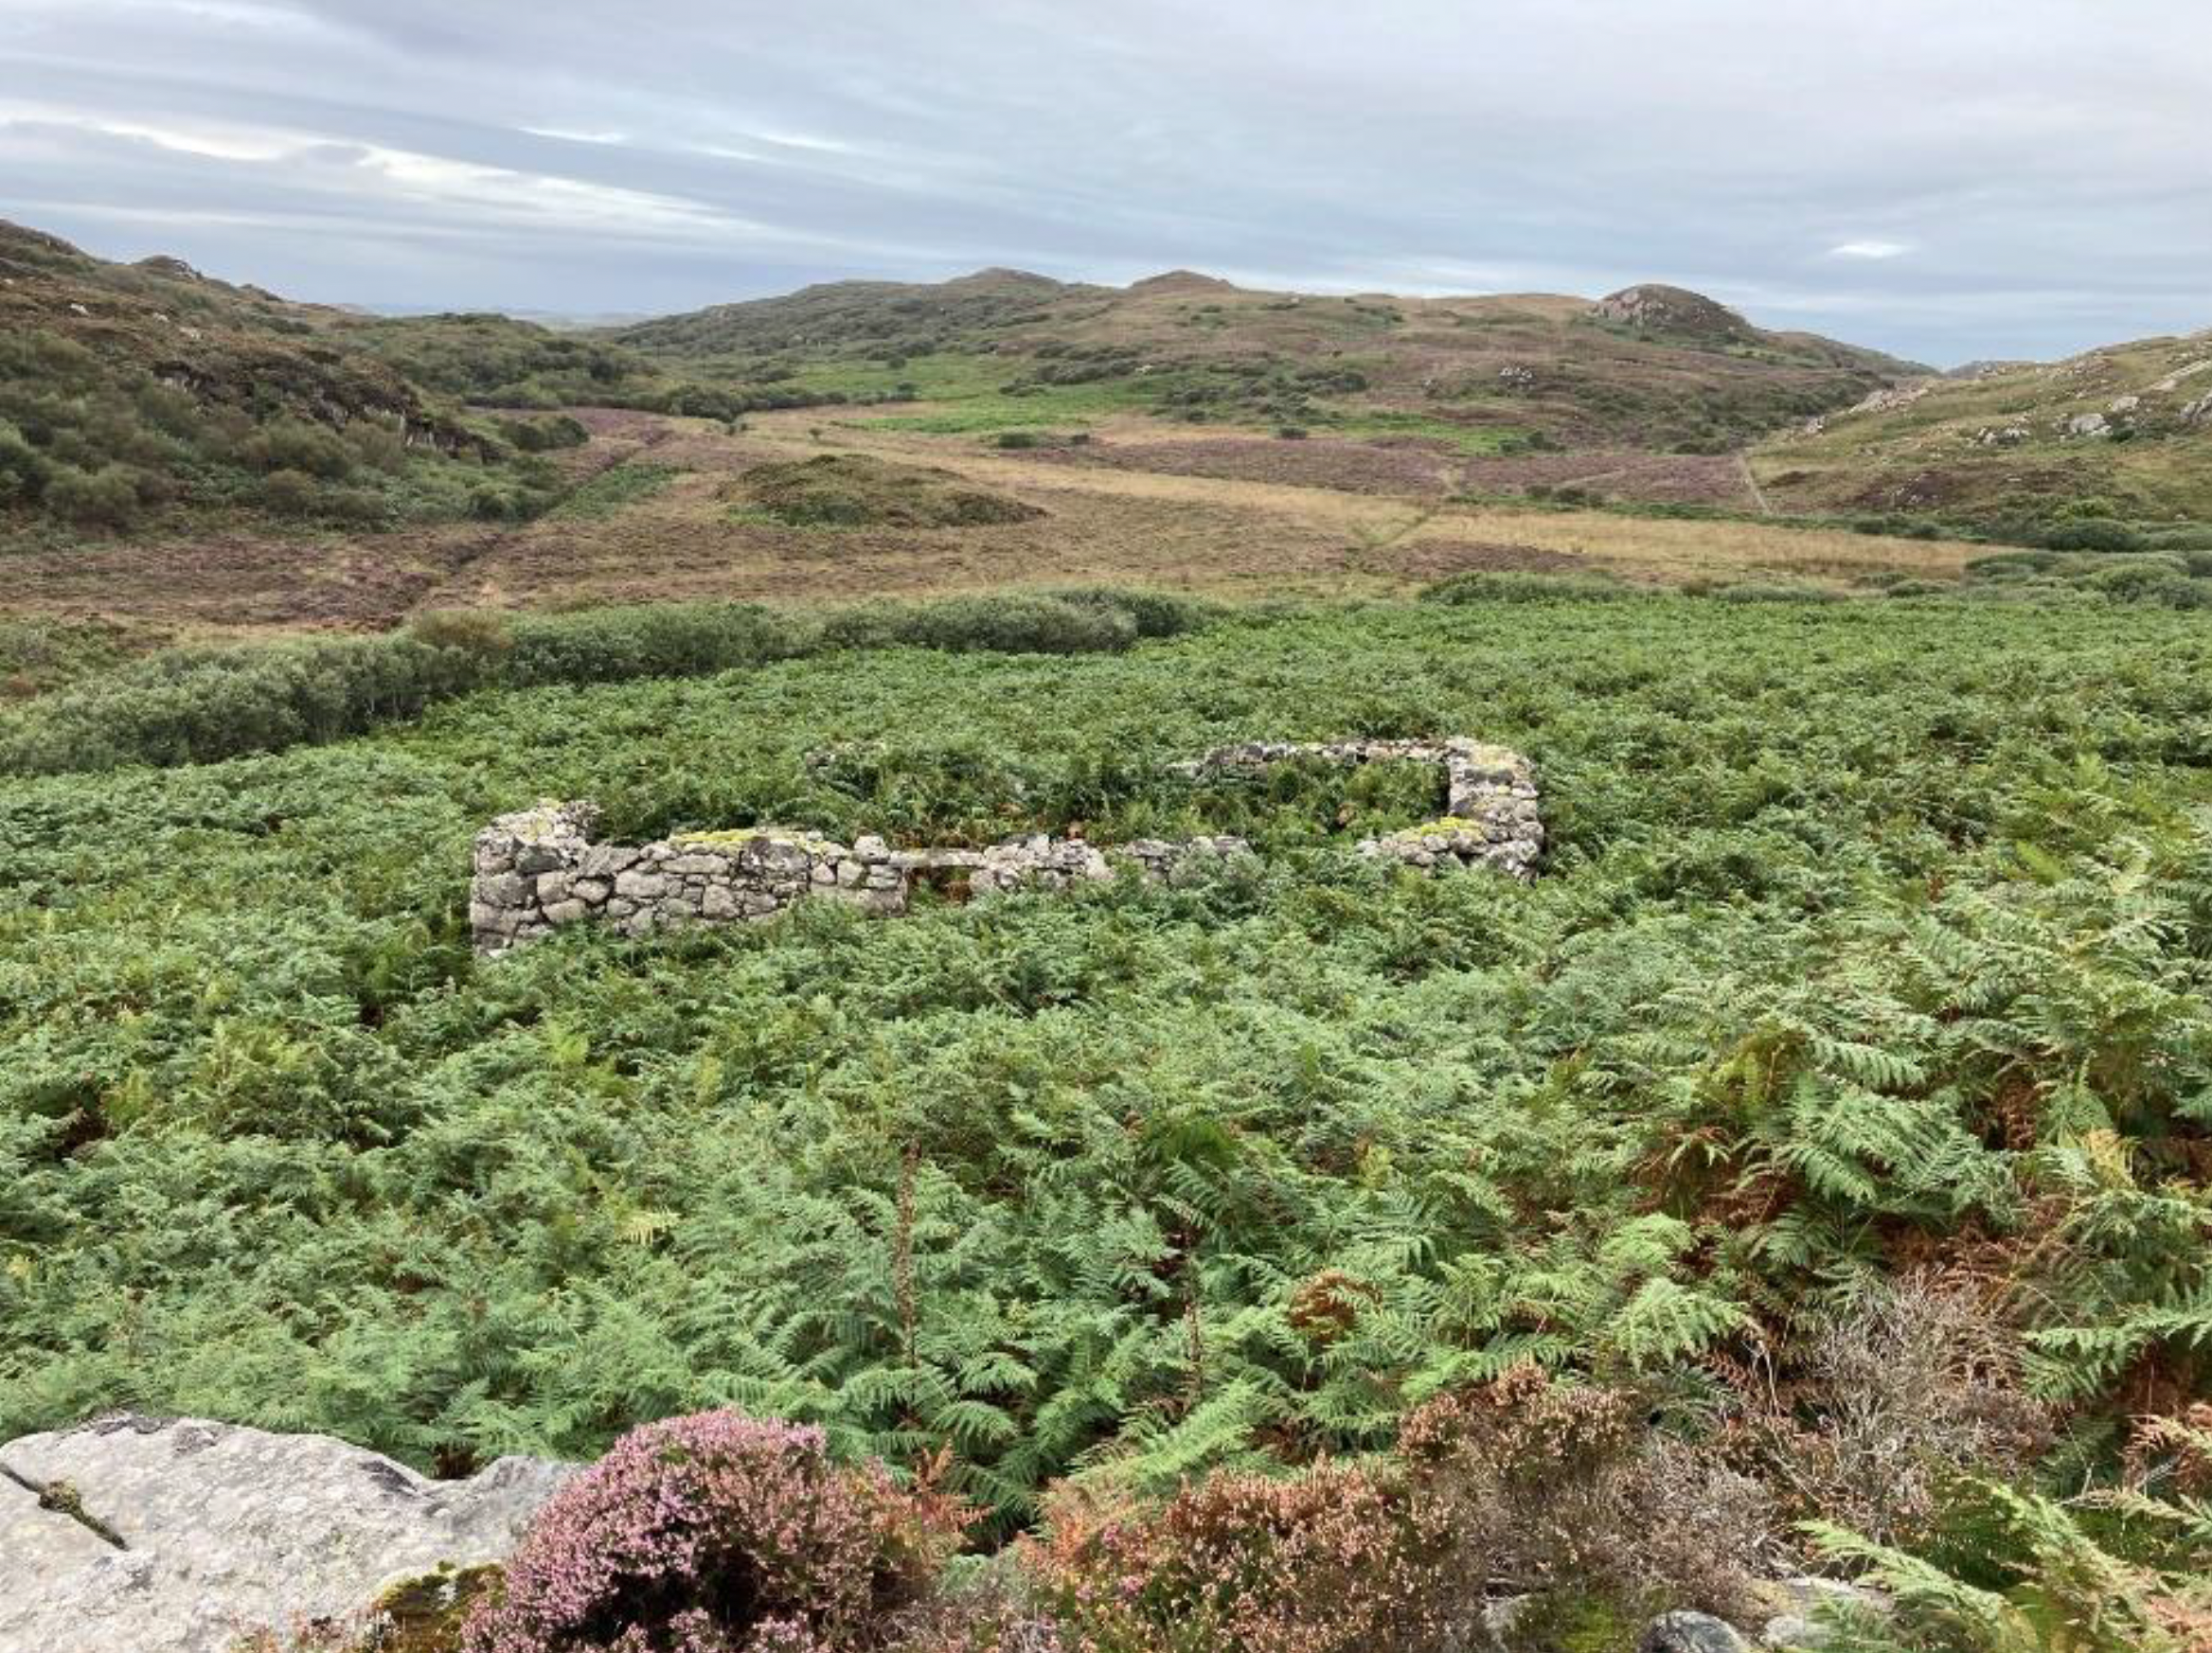 Remains from the highland clearances